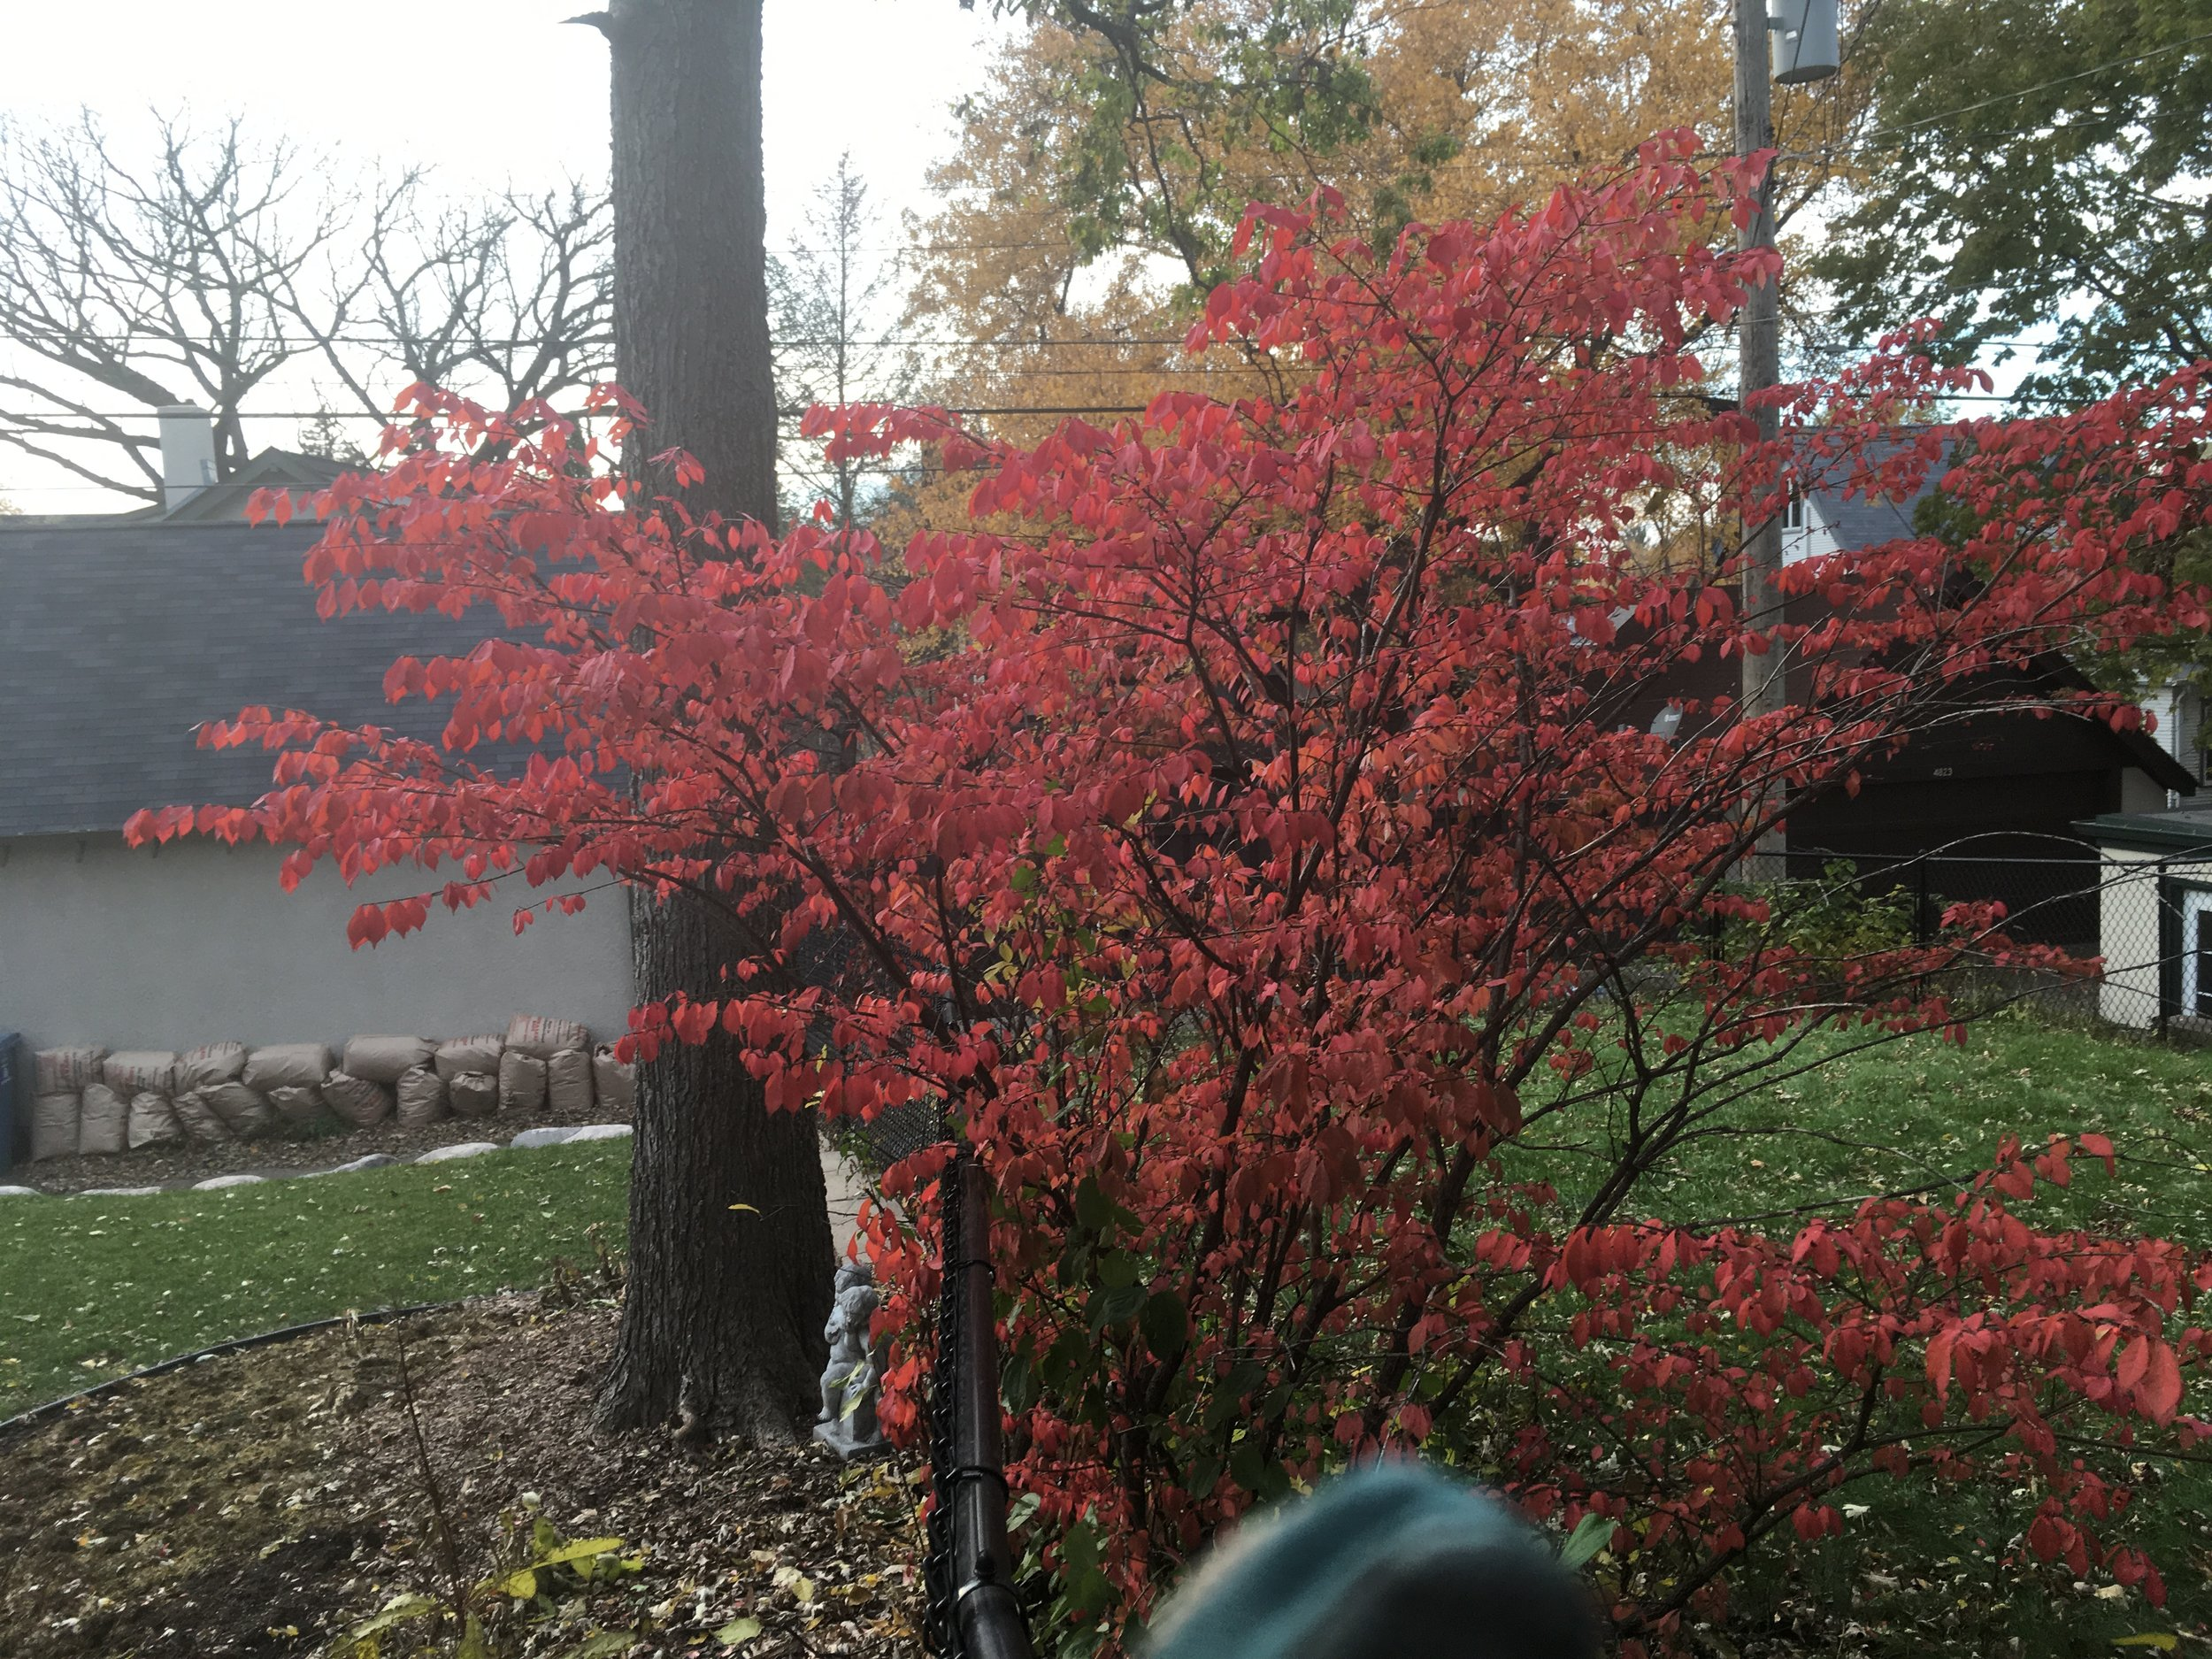 Euonymus Burning Bush - Vibrant punctuation in the Autumn landscape.